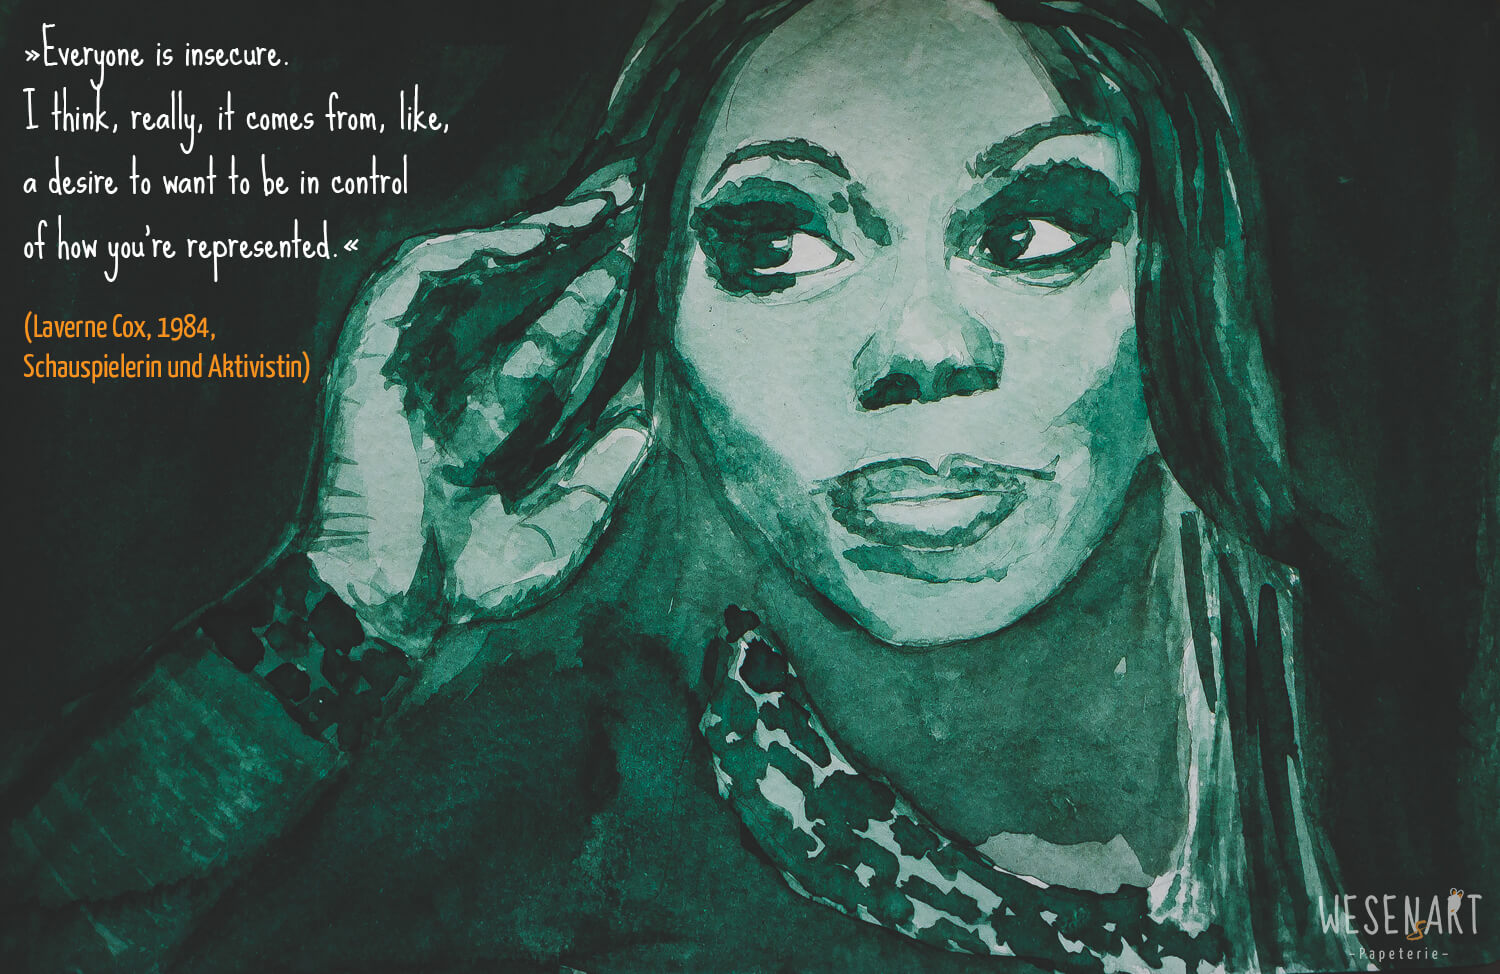 WESENsART: Aquarell-Porträt von Laverne Cox: »Everyone is insecure. I think, really, it comes from, like, a desire to want to be in control of how you're represented.«